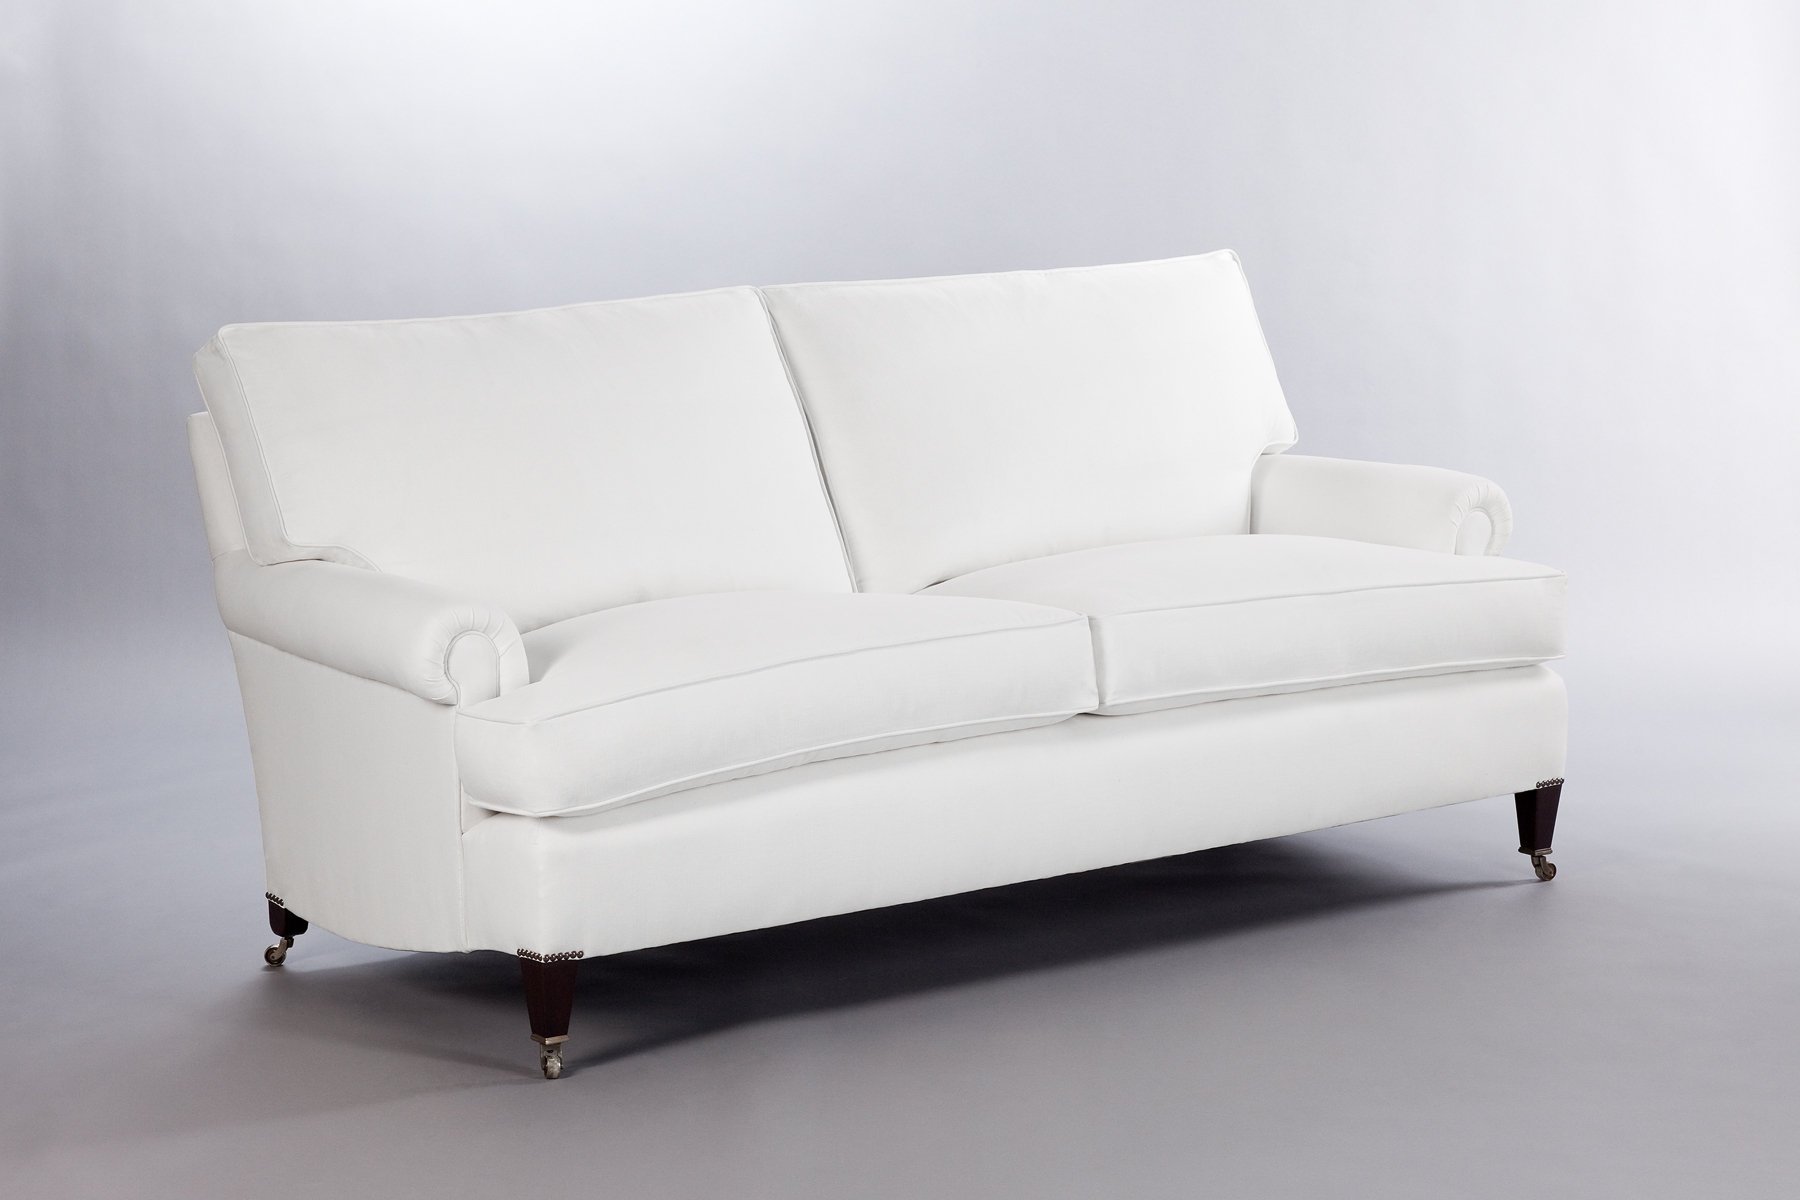 The quintessential English Arm sofa by George Smith; this version has a T-cushion and tapered legs with casters.